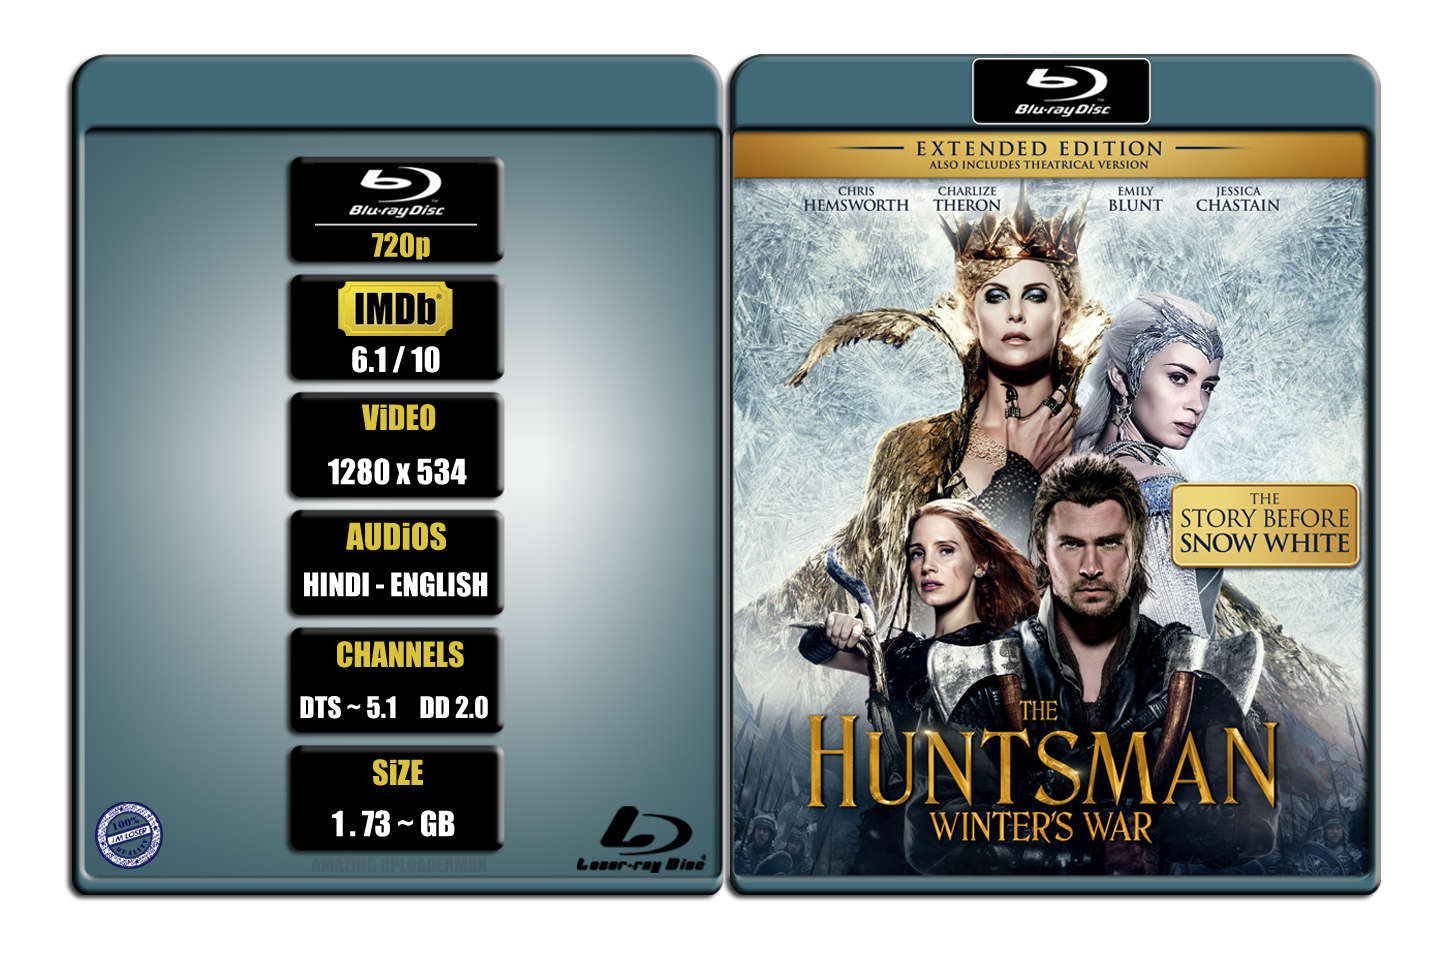 The Huntsman Winters War [2016] [EXTENDED CUT] 720p BR Rip x264 [DTS 5.1 HINDI – DD 2.0 ENG] ® Im Loser ® 1.76 GB